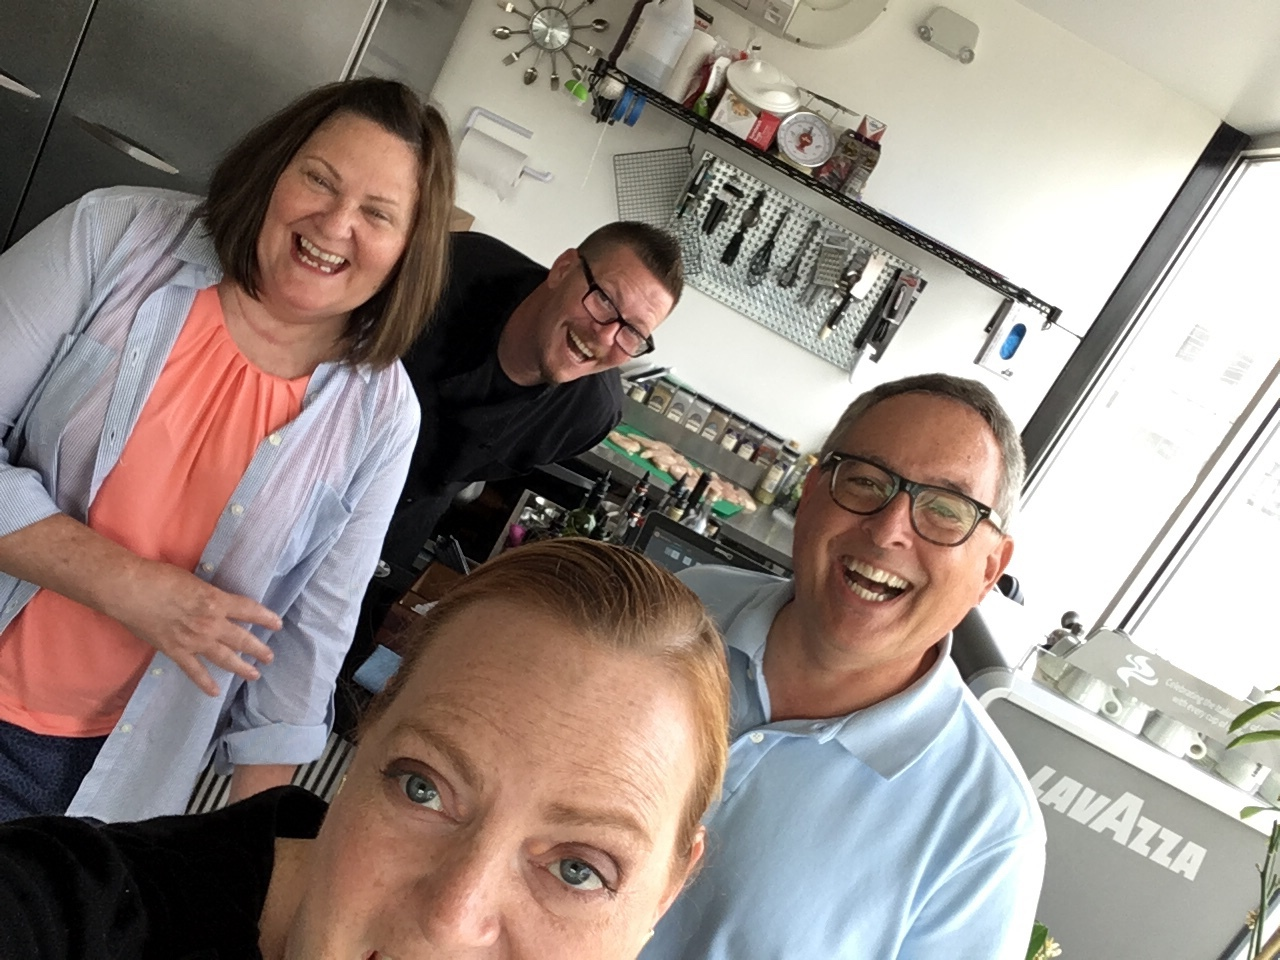 When the Mayor and his wife stopped in for dinner we were thrilled and had to capture a quick selfie! Thank you to Steve and Susan Gawron for loving and supporting Muskegon!